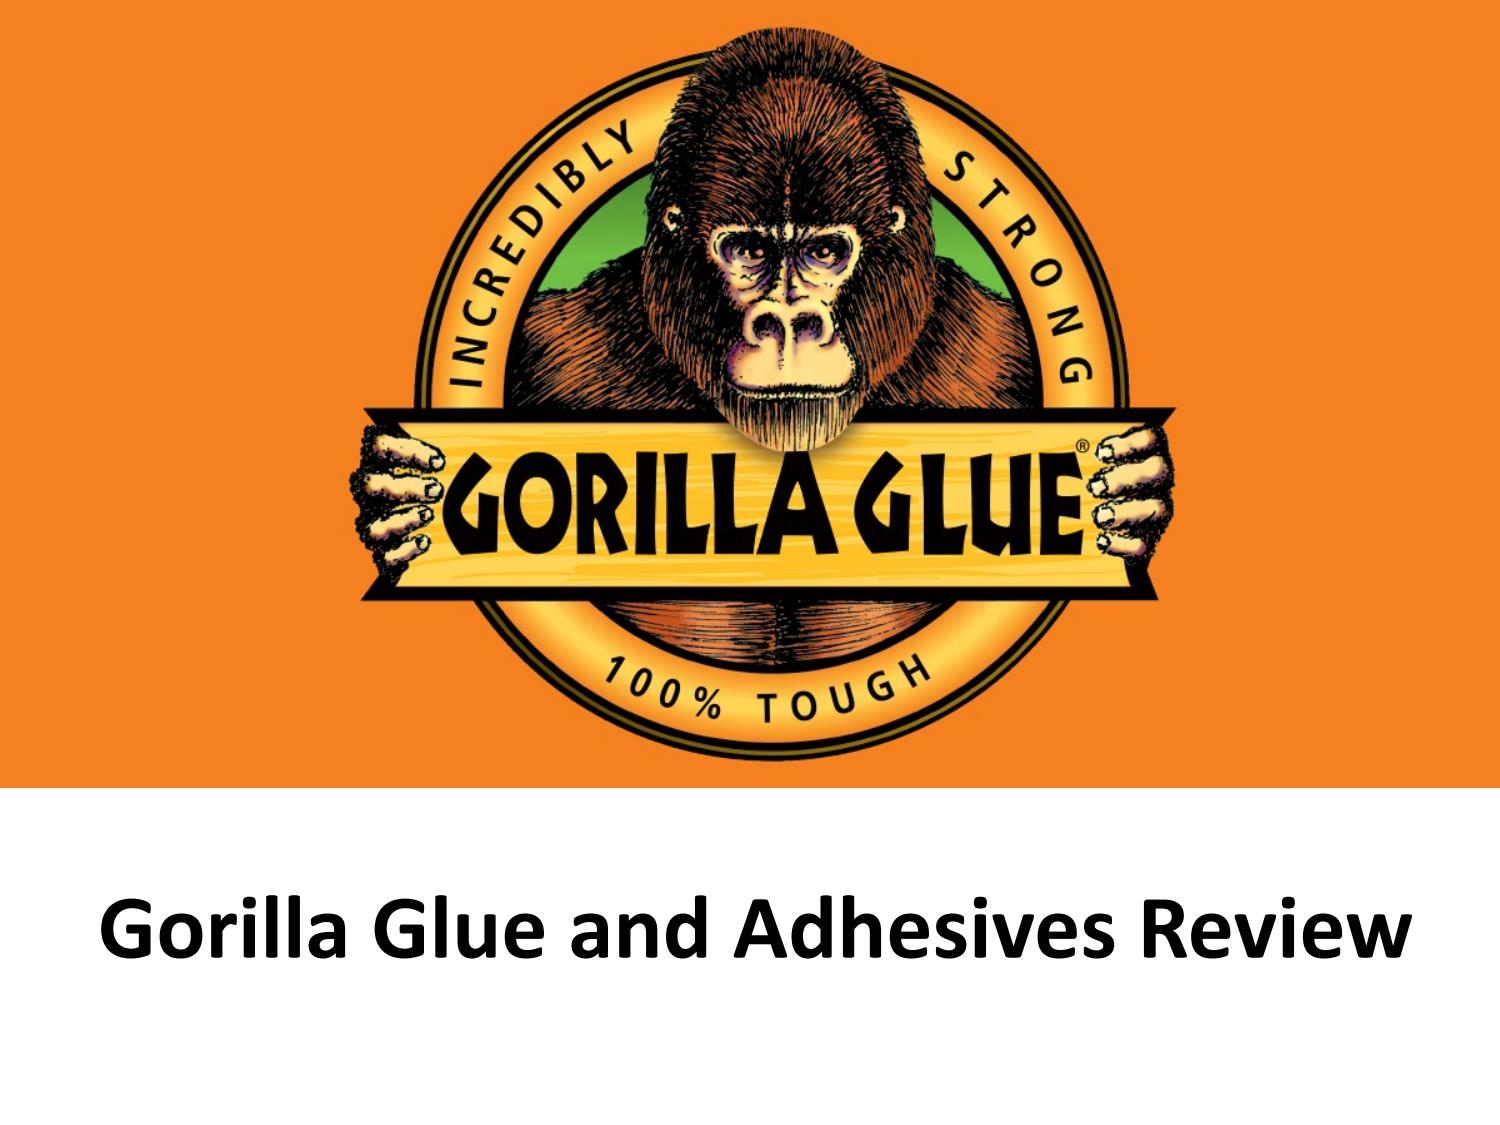 Gorilla Glue Review >> Gorilla Glue And Adhesives Review By Gregory21 Issuu